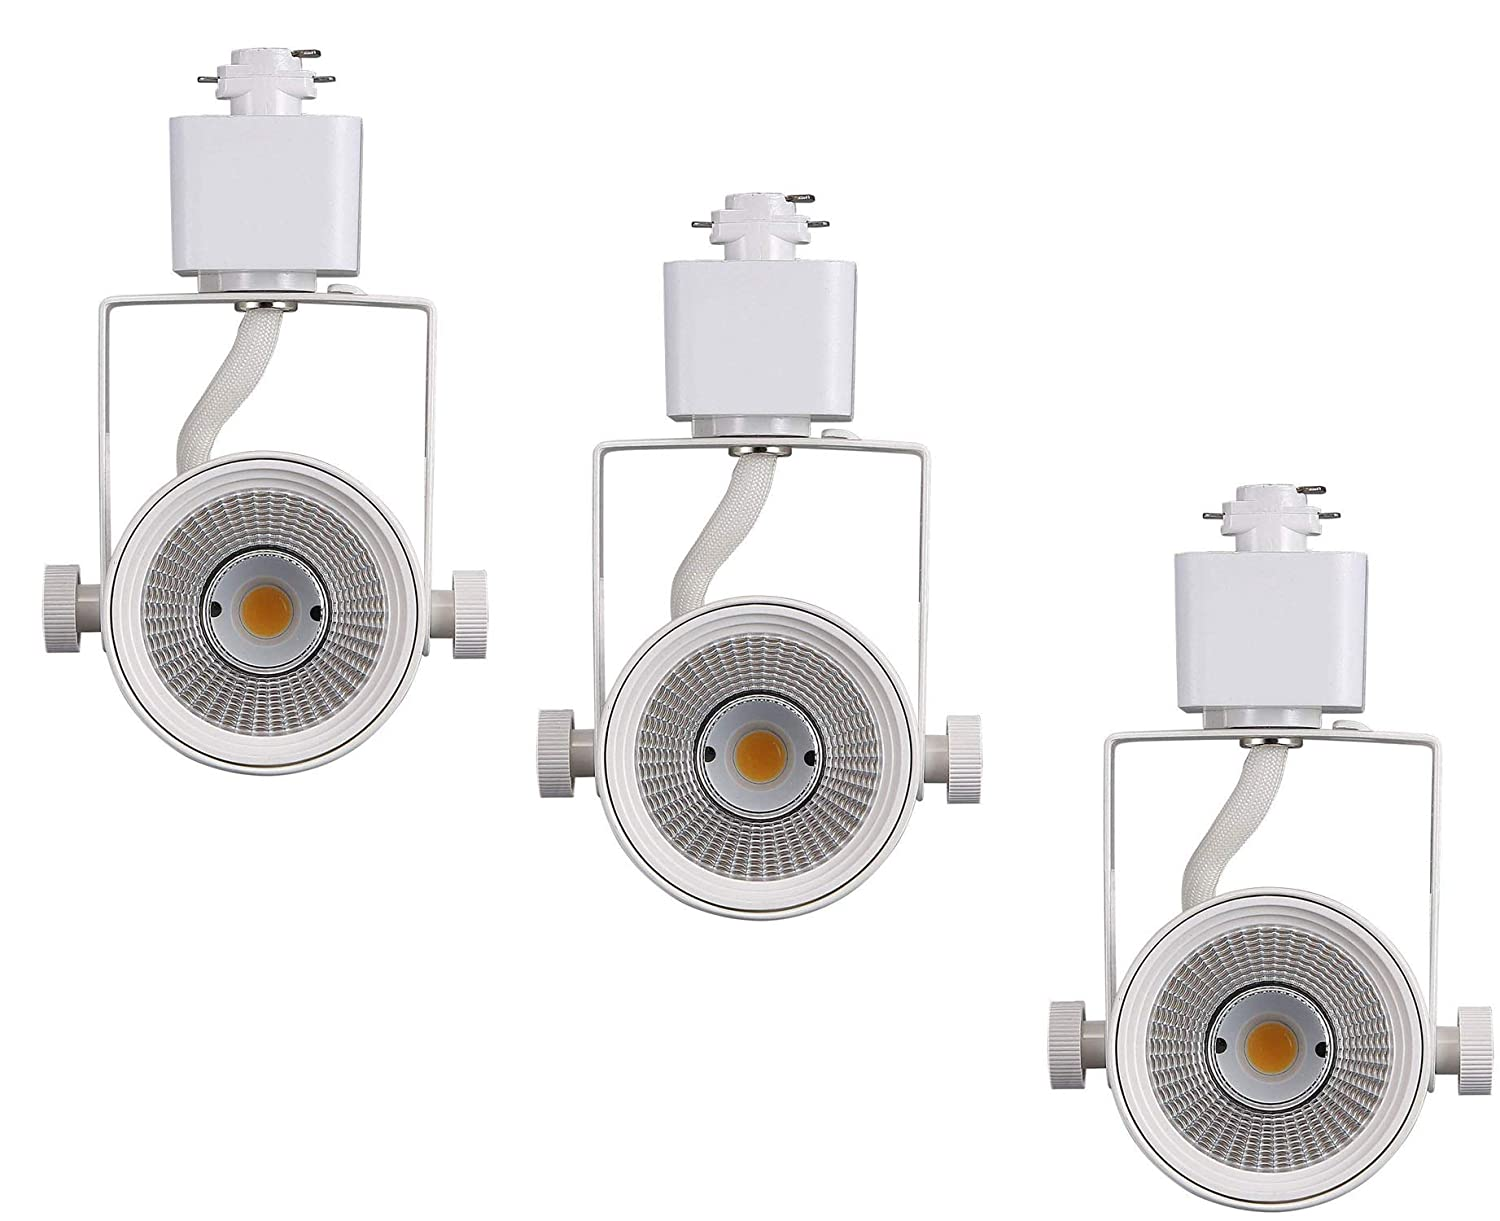 Cloudy Bay LED Track Light Head,CRI90+ Warm White Dimmable,Adjustable Tilt Angle Track Lighting Fixture,8W 40° Angle for Accent Retail,White Finish,Halo Type- 3 Pack